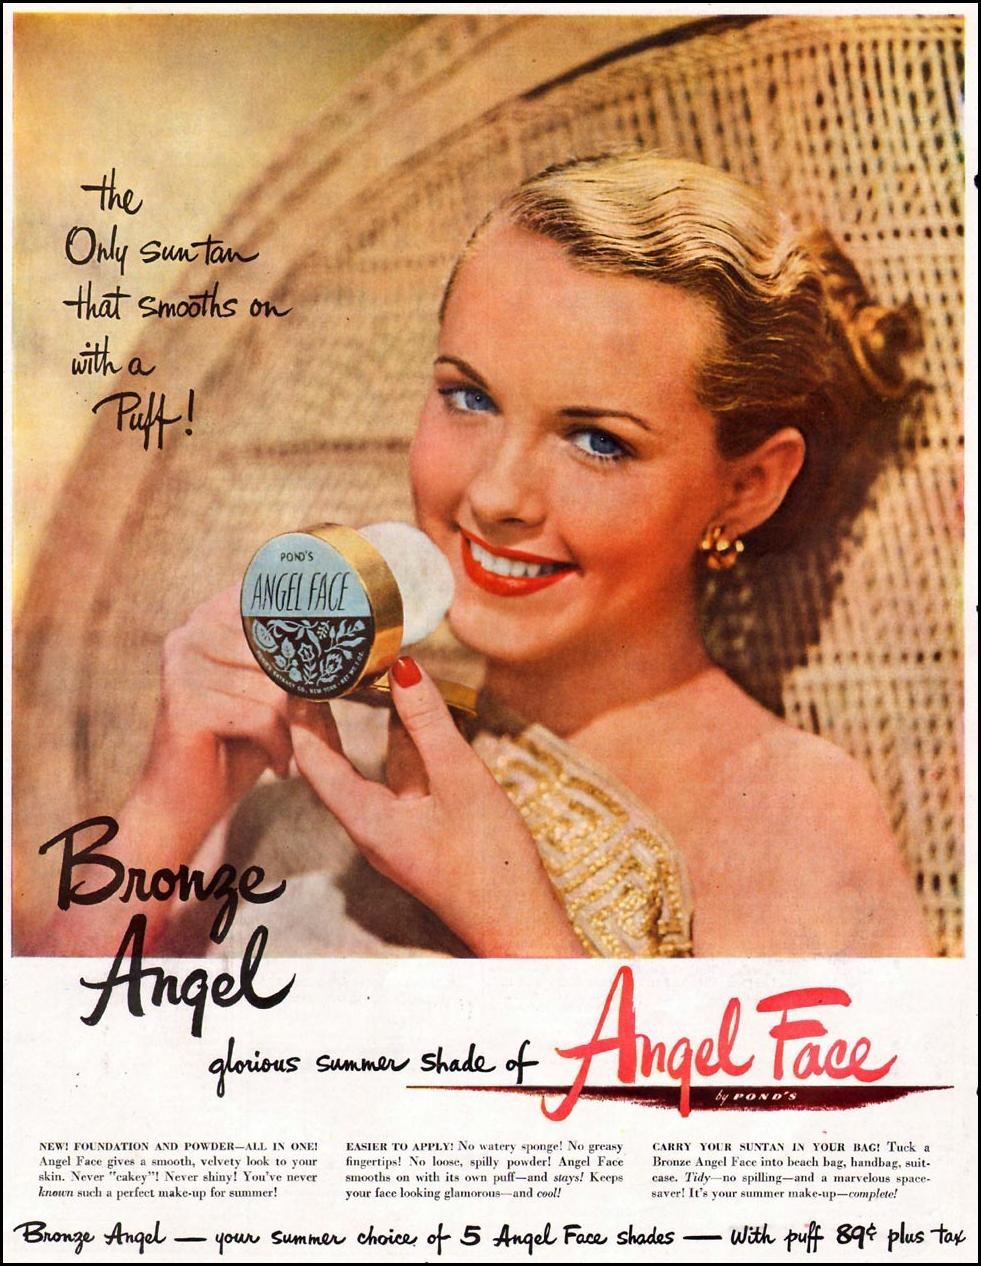 POND'S ANGEL FACE COSMETICS LADIES' HOME JOURNAL 07/01/1949 p. 80